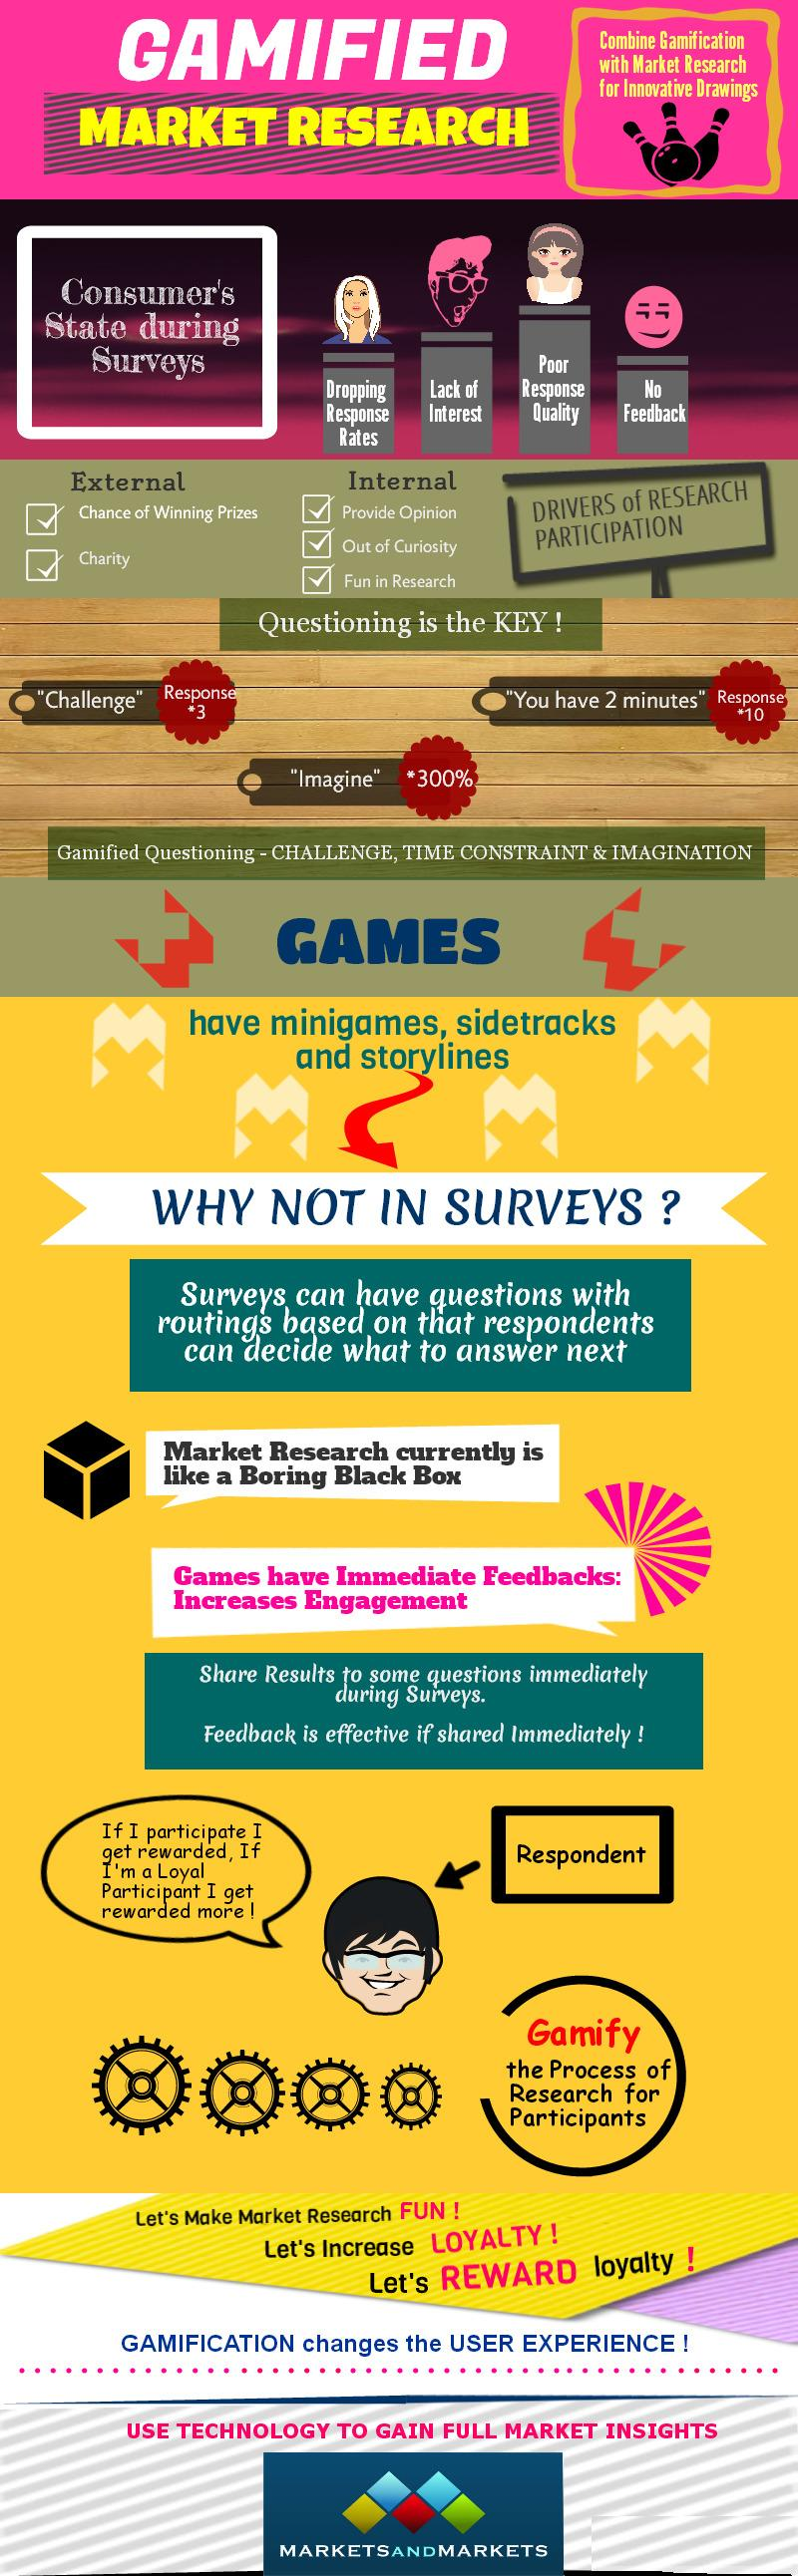 gamification market infographic